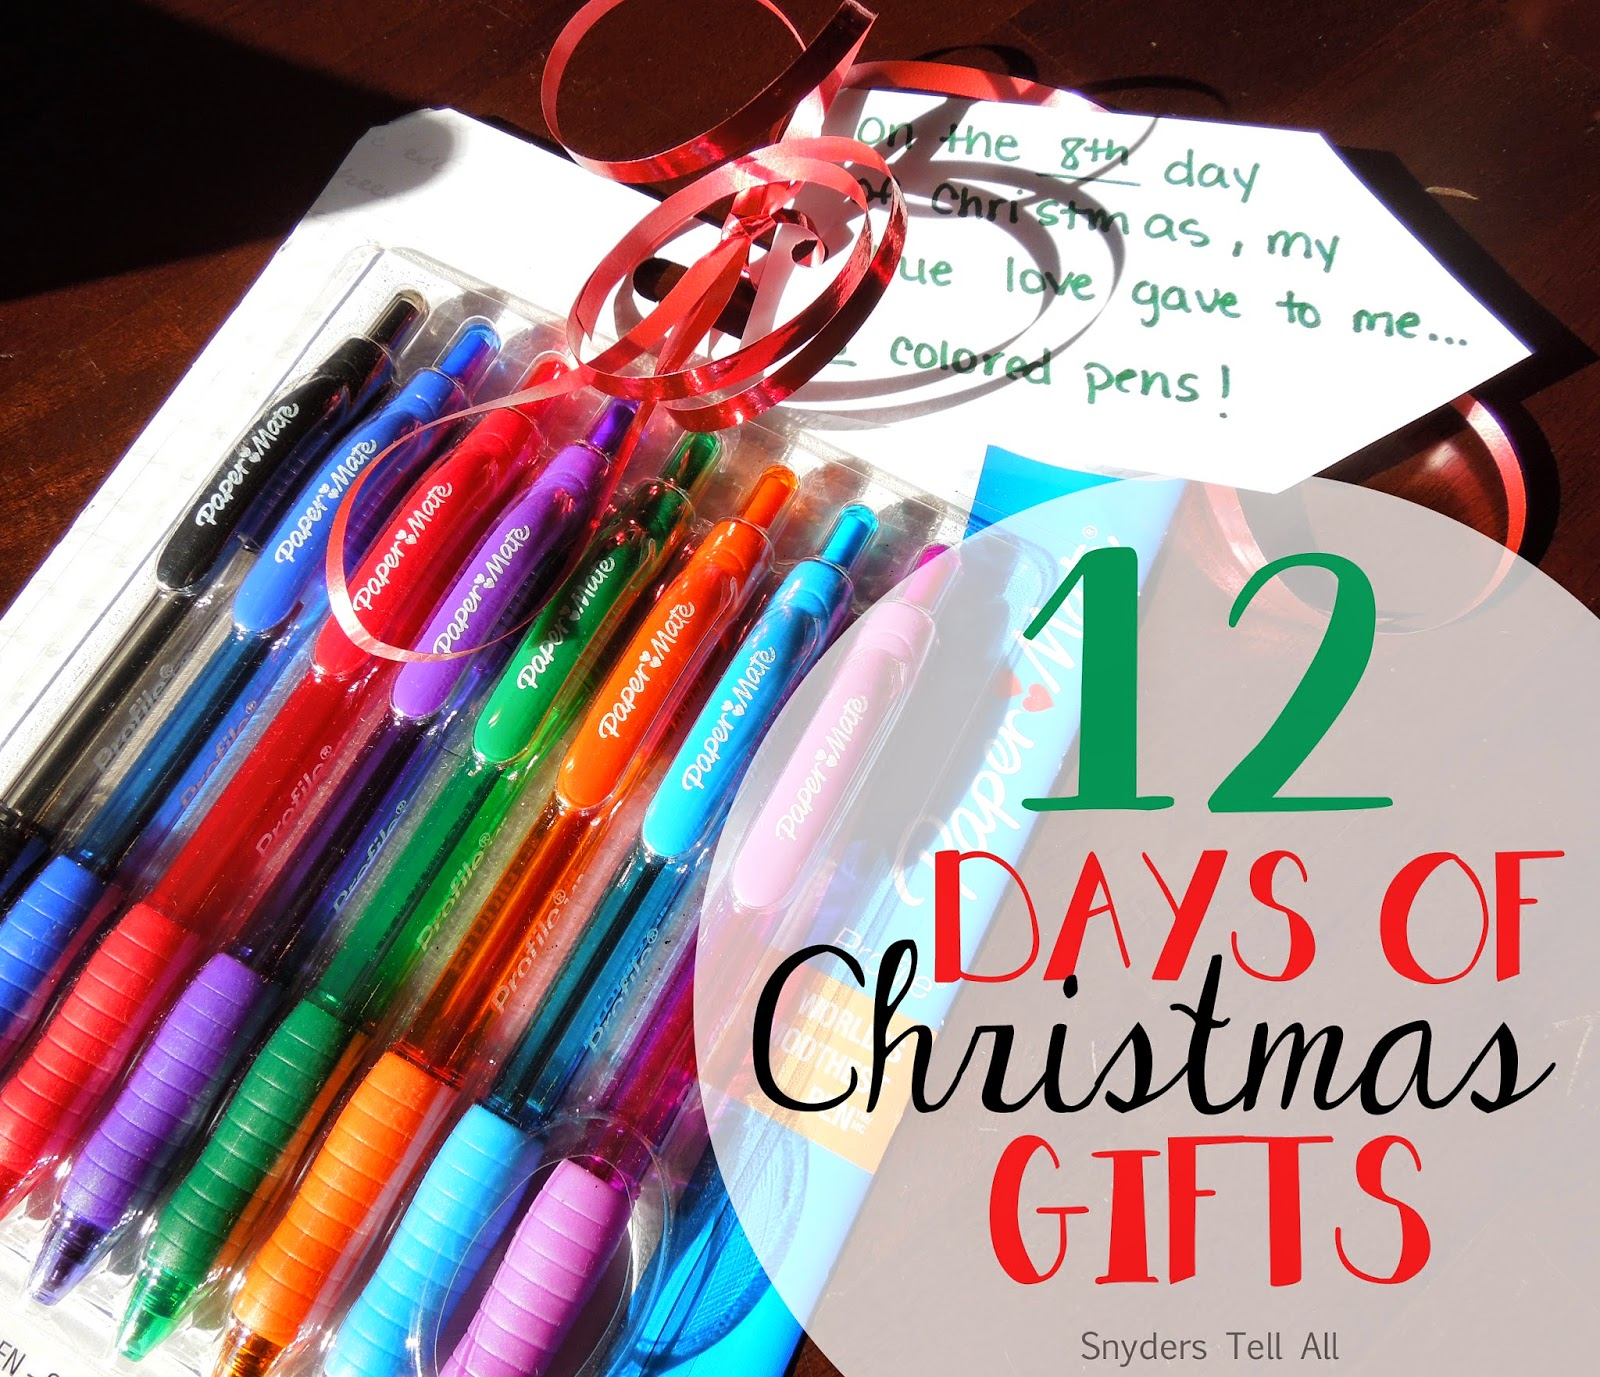 12 Days of Christmas Gifts - Joyfully Prudent